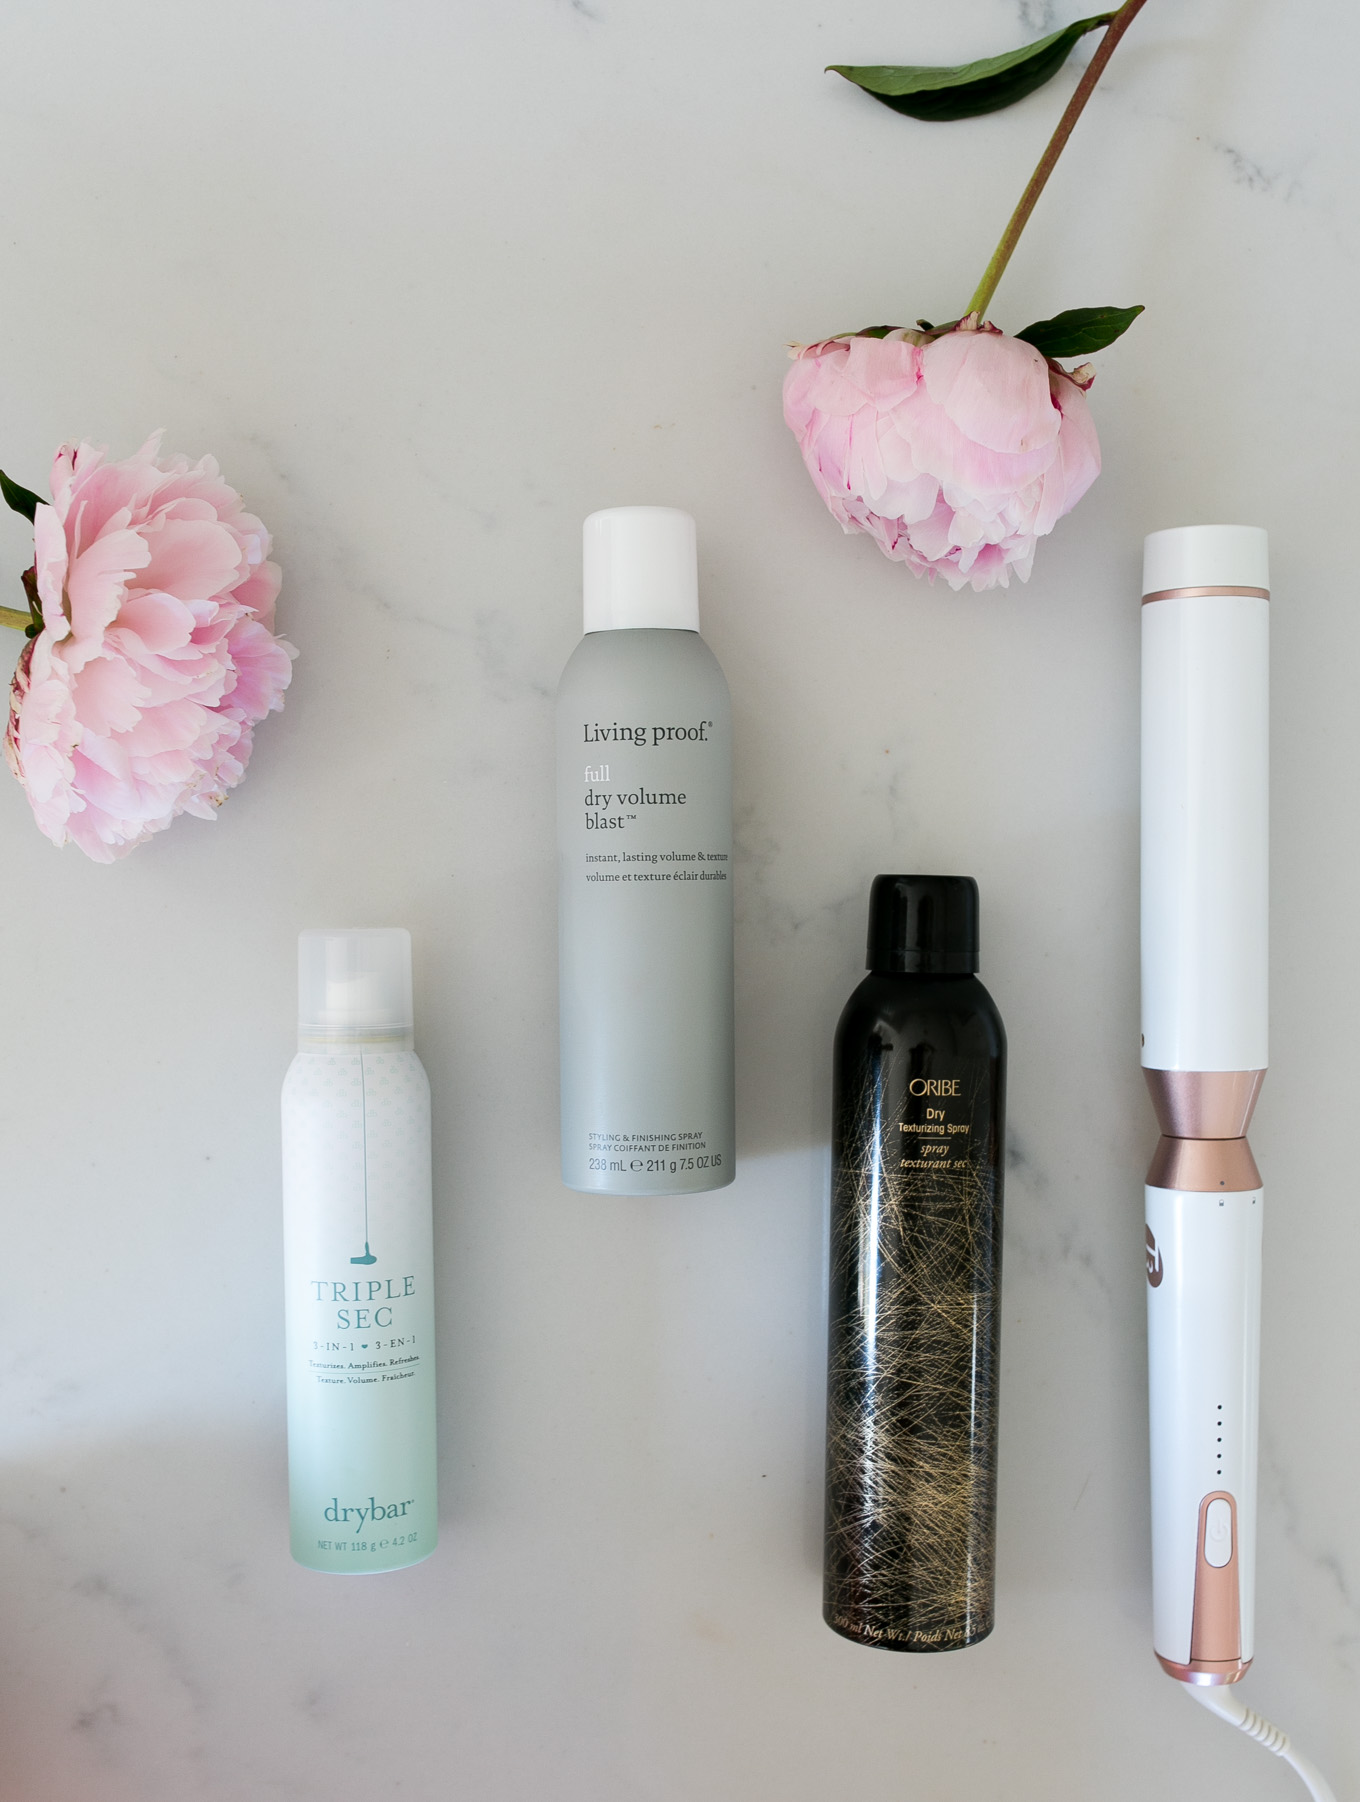 Blogger Daryl-Ann Denner of Something Beautiful share her favorite hair care products for full hair including Dry Bar Triple Sec, Living Proof Full Dry Volume Blast, and Oribe Dry Texturizing Spray and curls with the t3 micro whirl trio curling wand